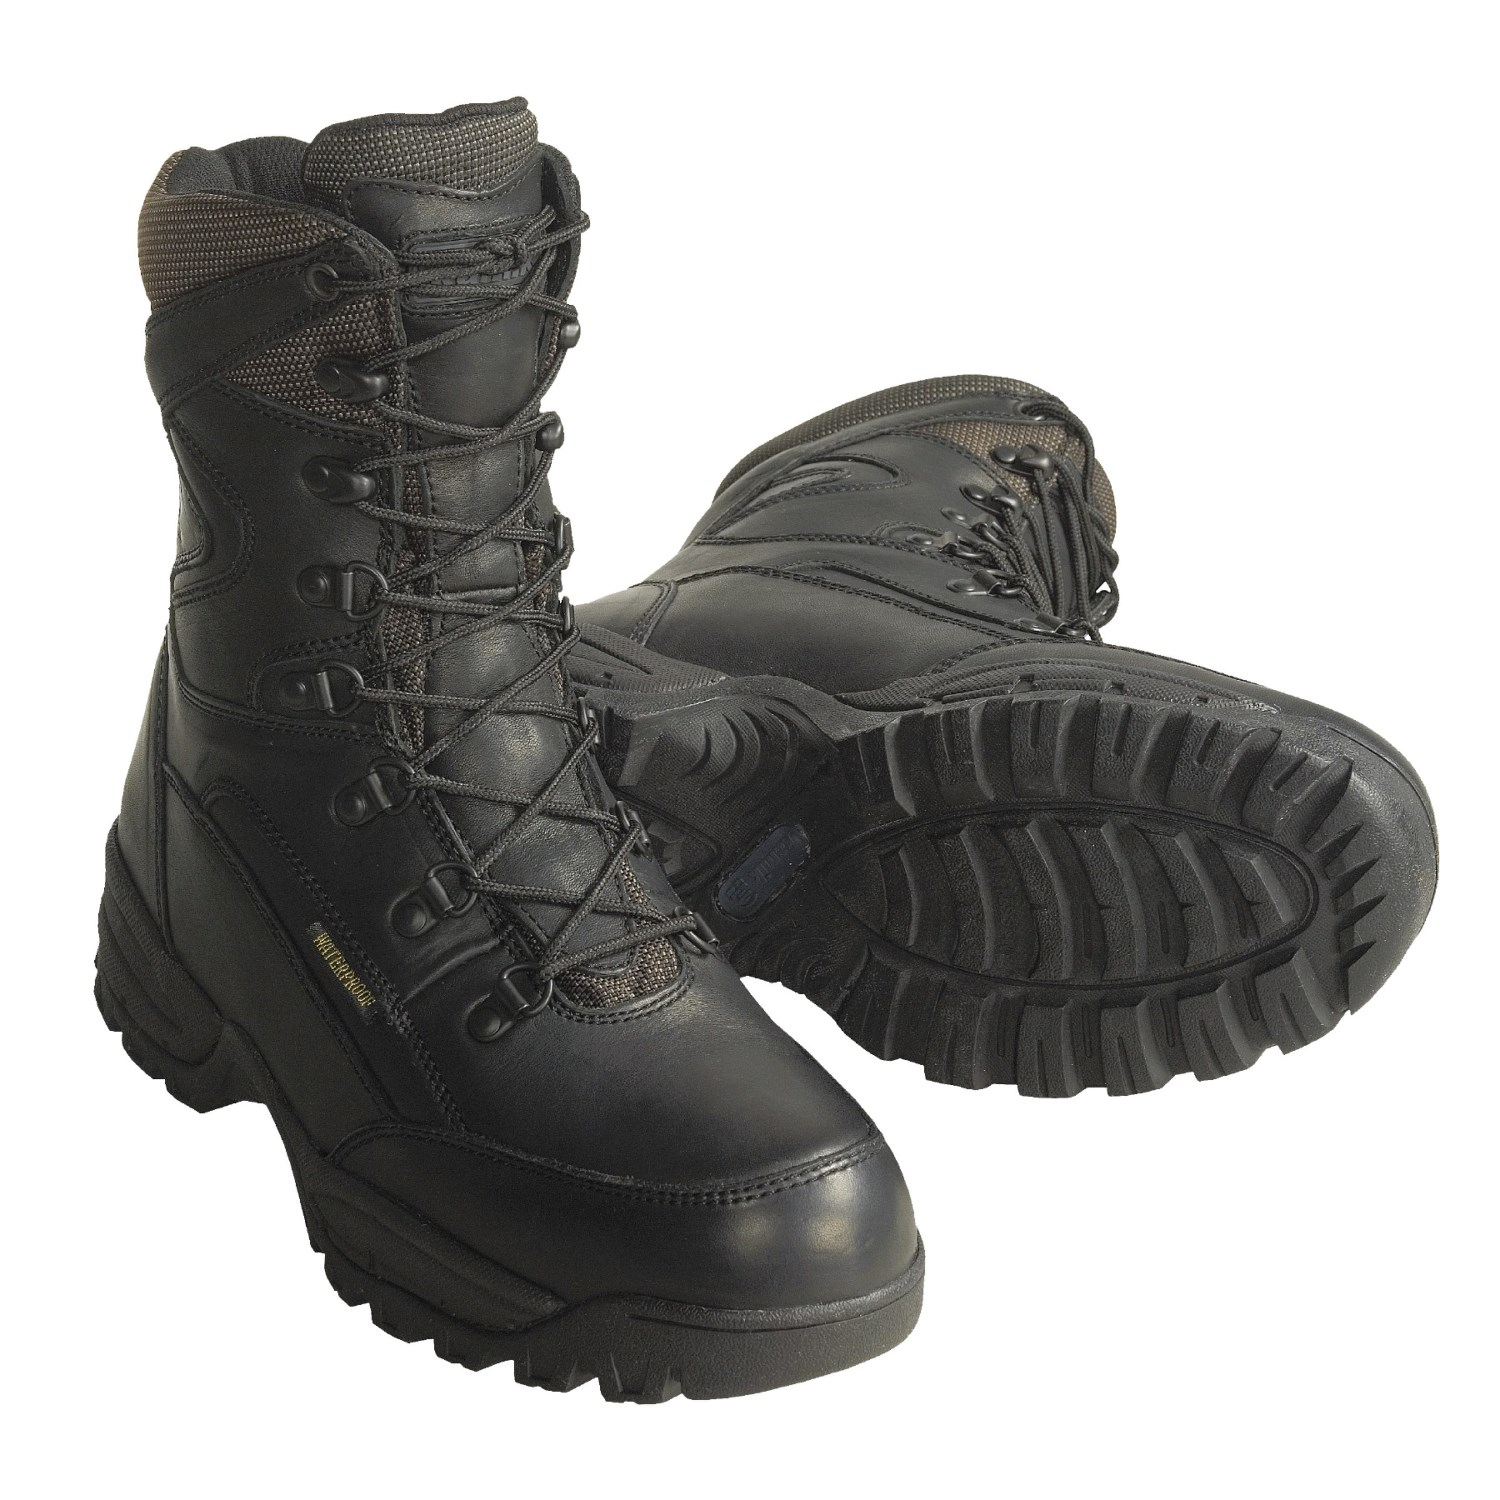 Kamik -40°F Bounty Boots (For Men) 87712